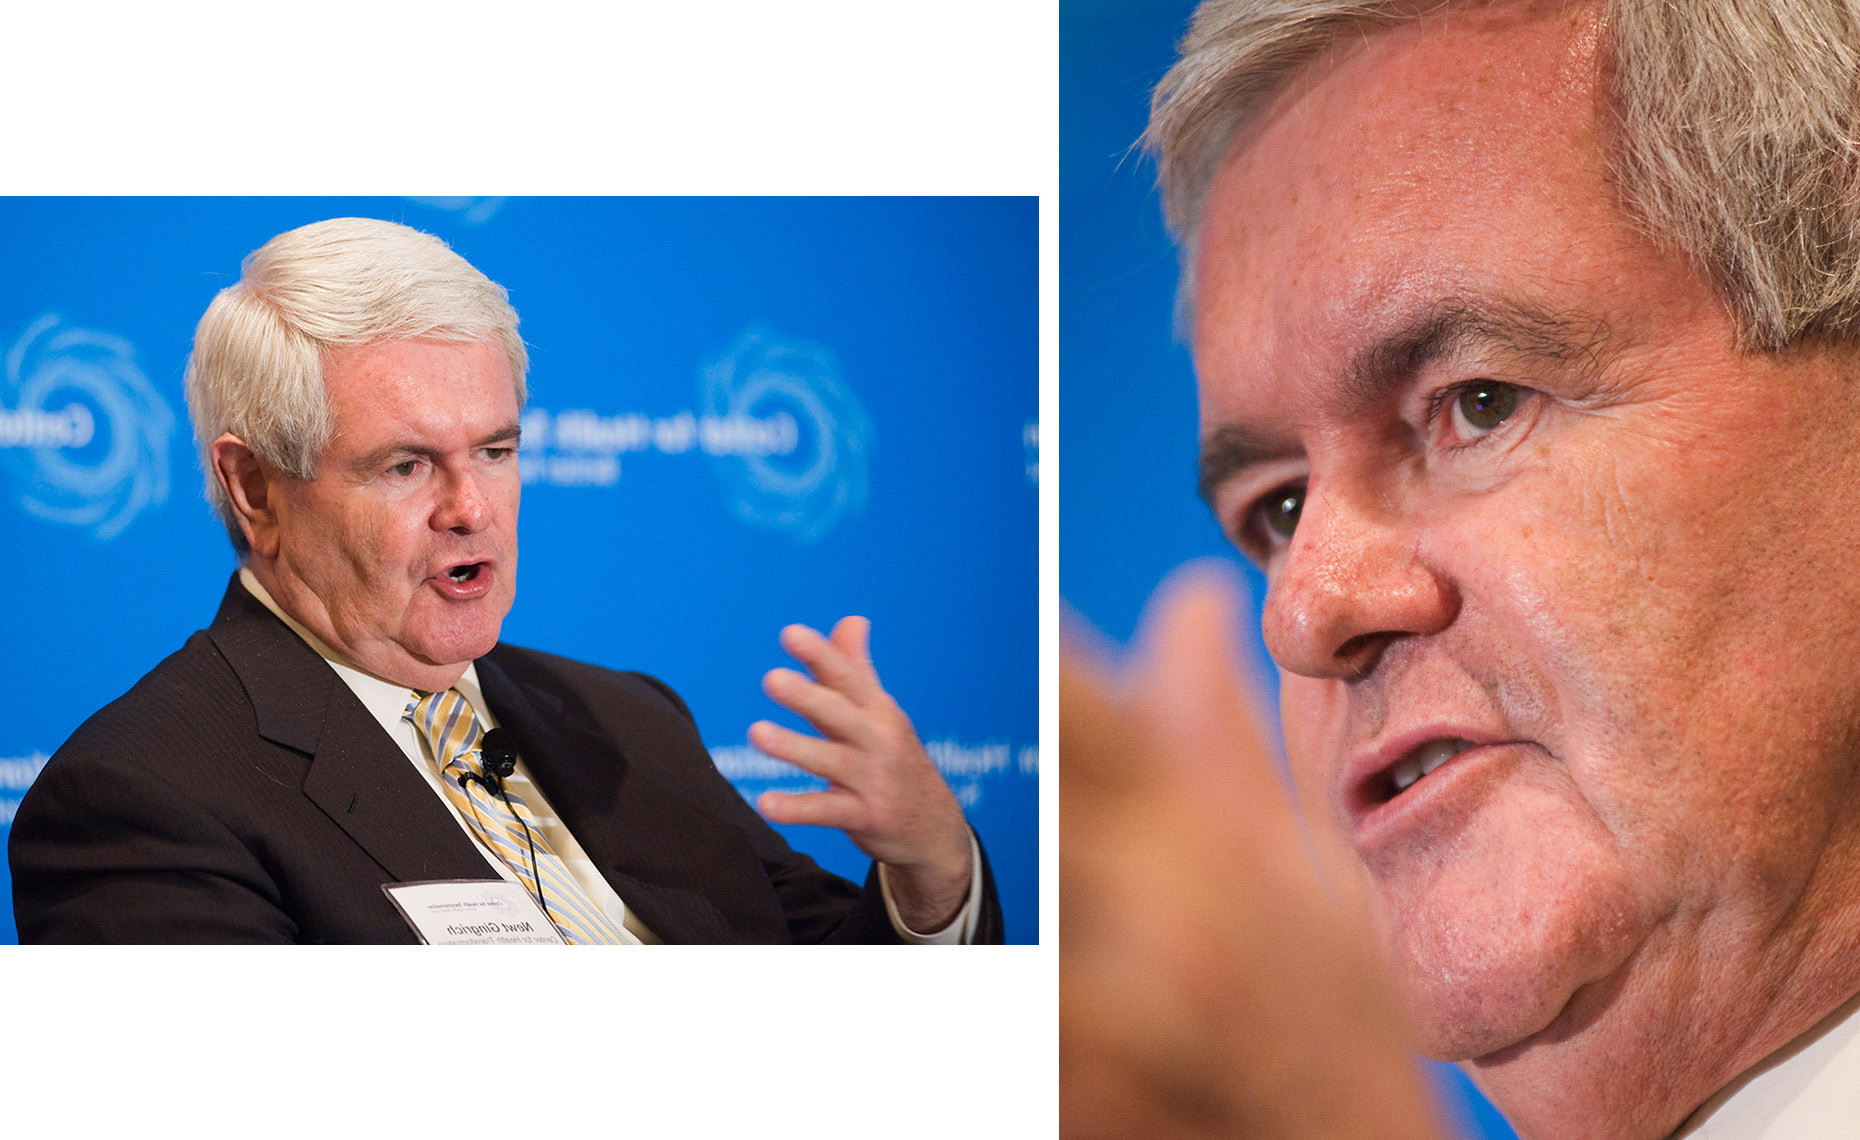 Newt Gingrich | Washington DC Photographer Aaron Clamage